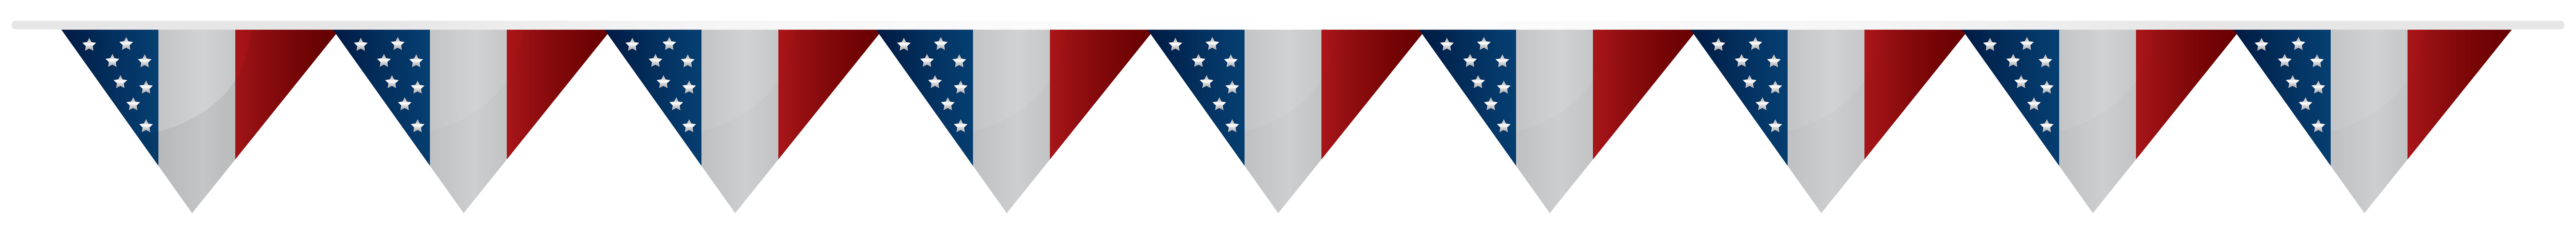 Streamers clipart 4th july. Usa streamer transparent png